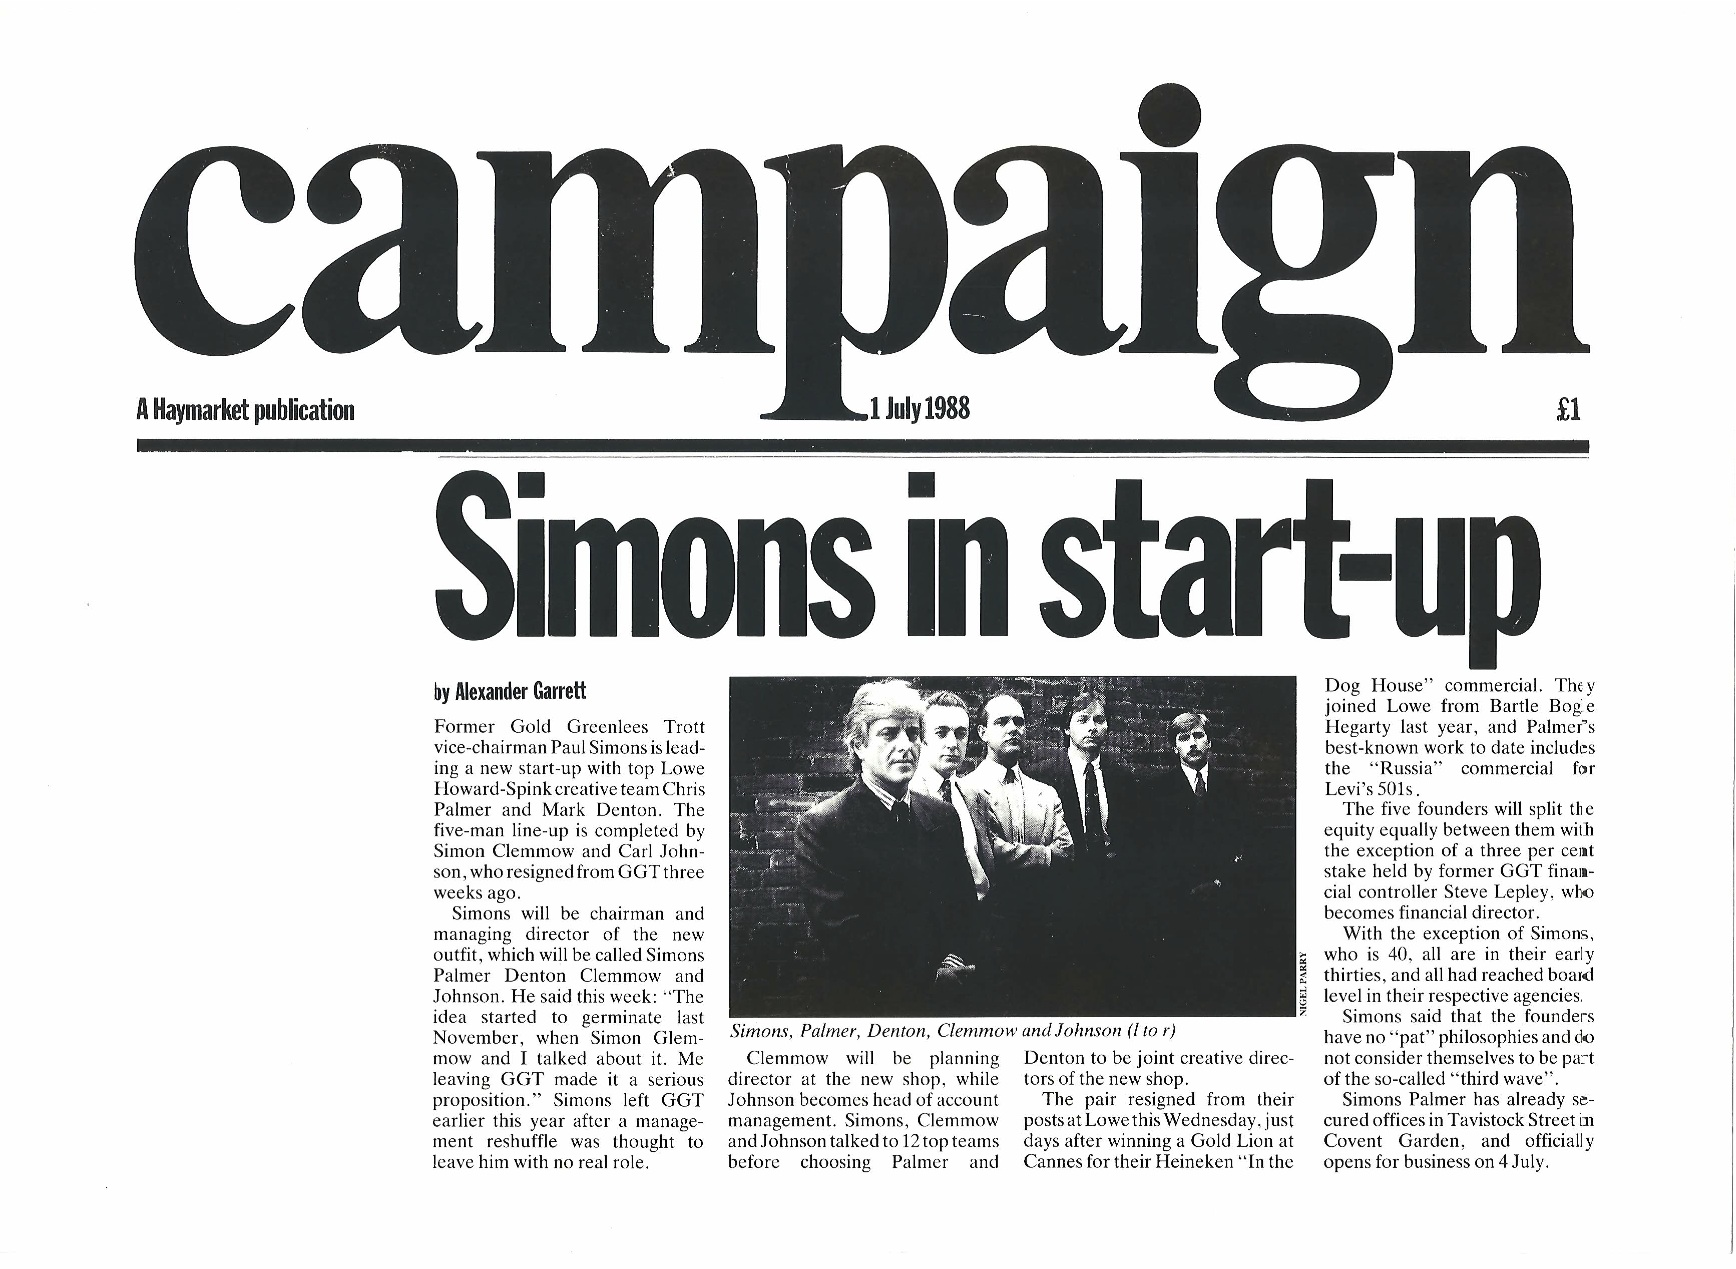 Even after 25 years the people legacy of our upstart agency Simons Palmer lives on